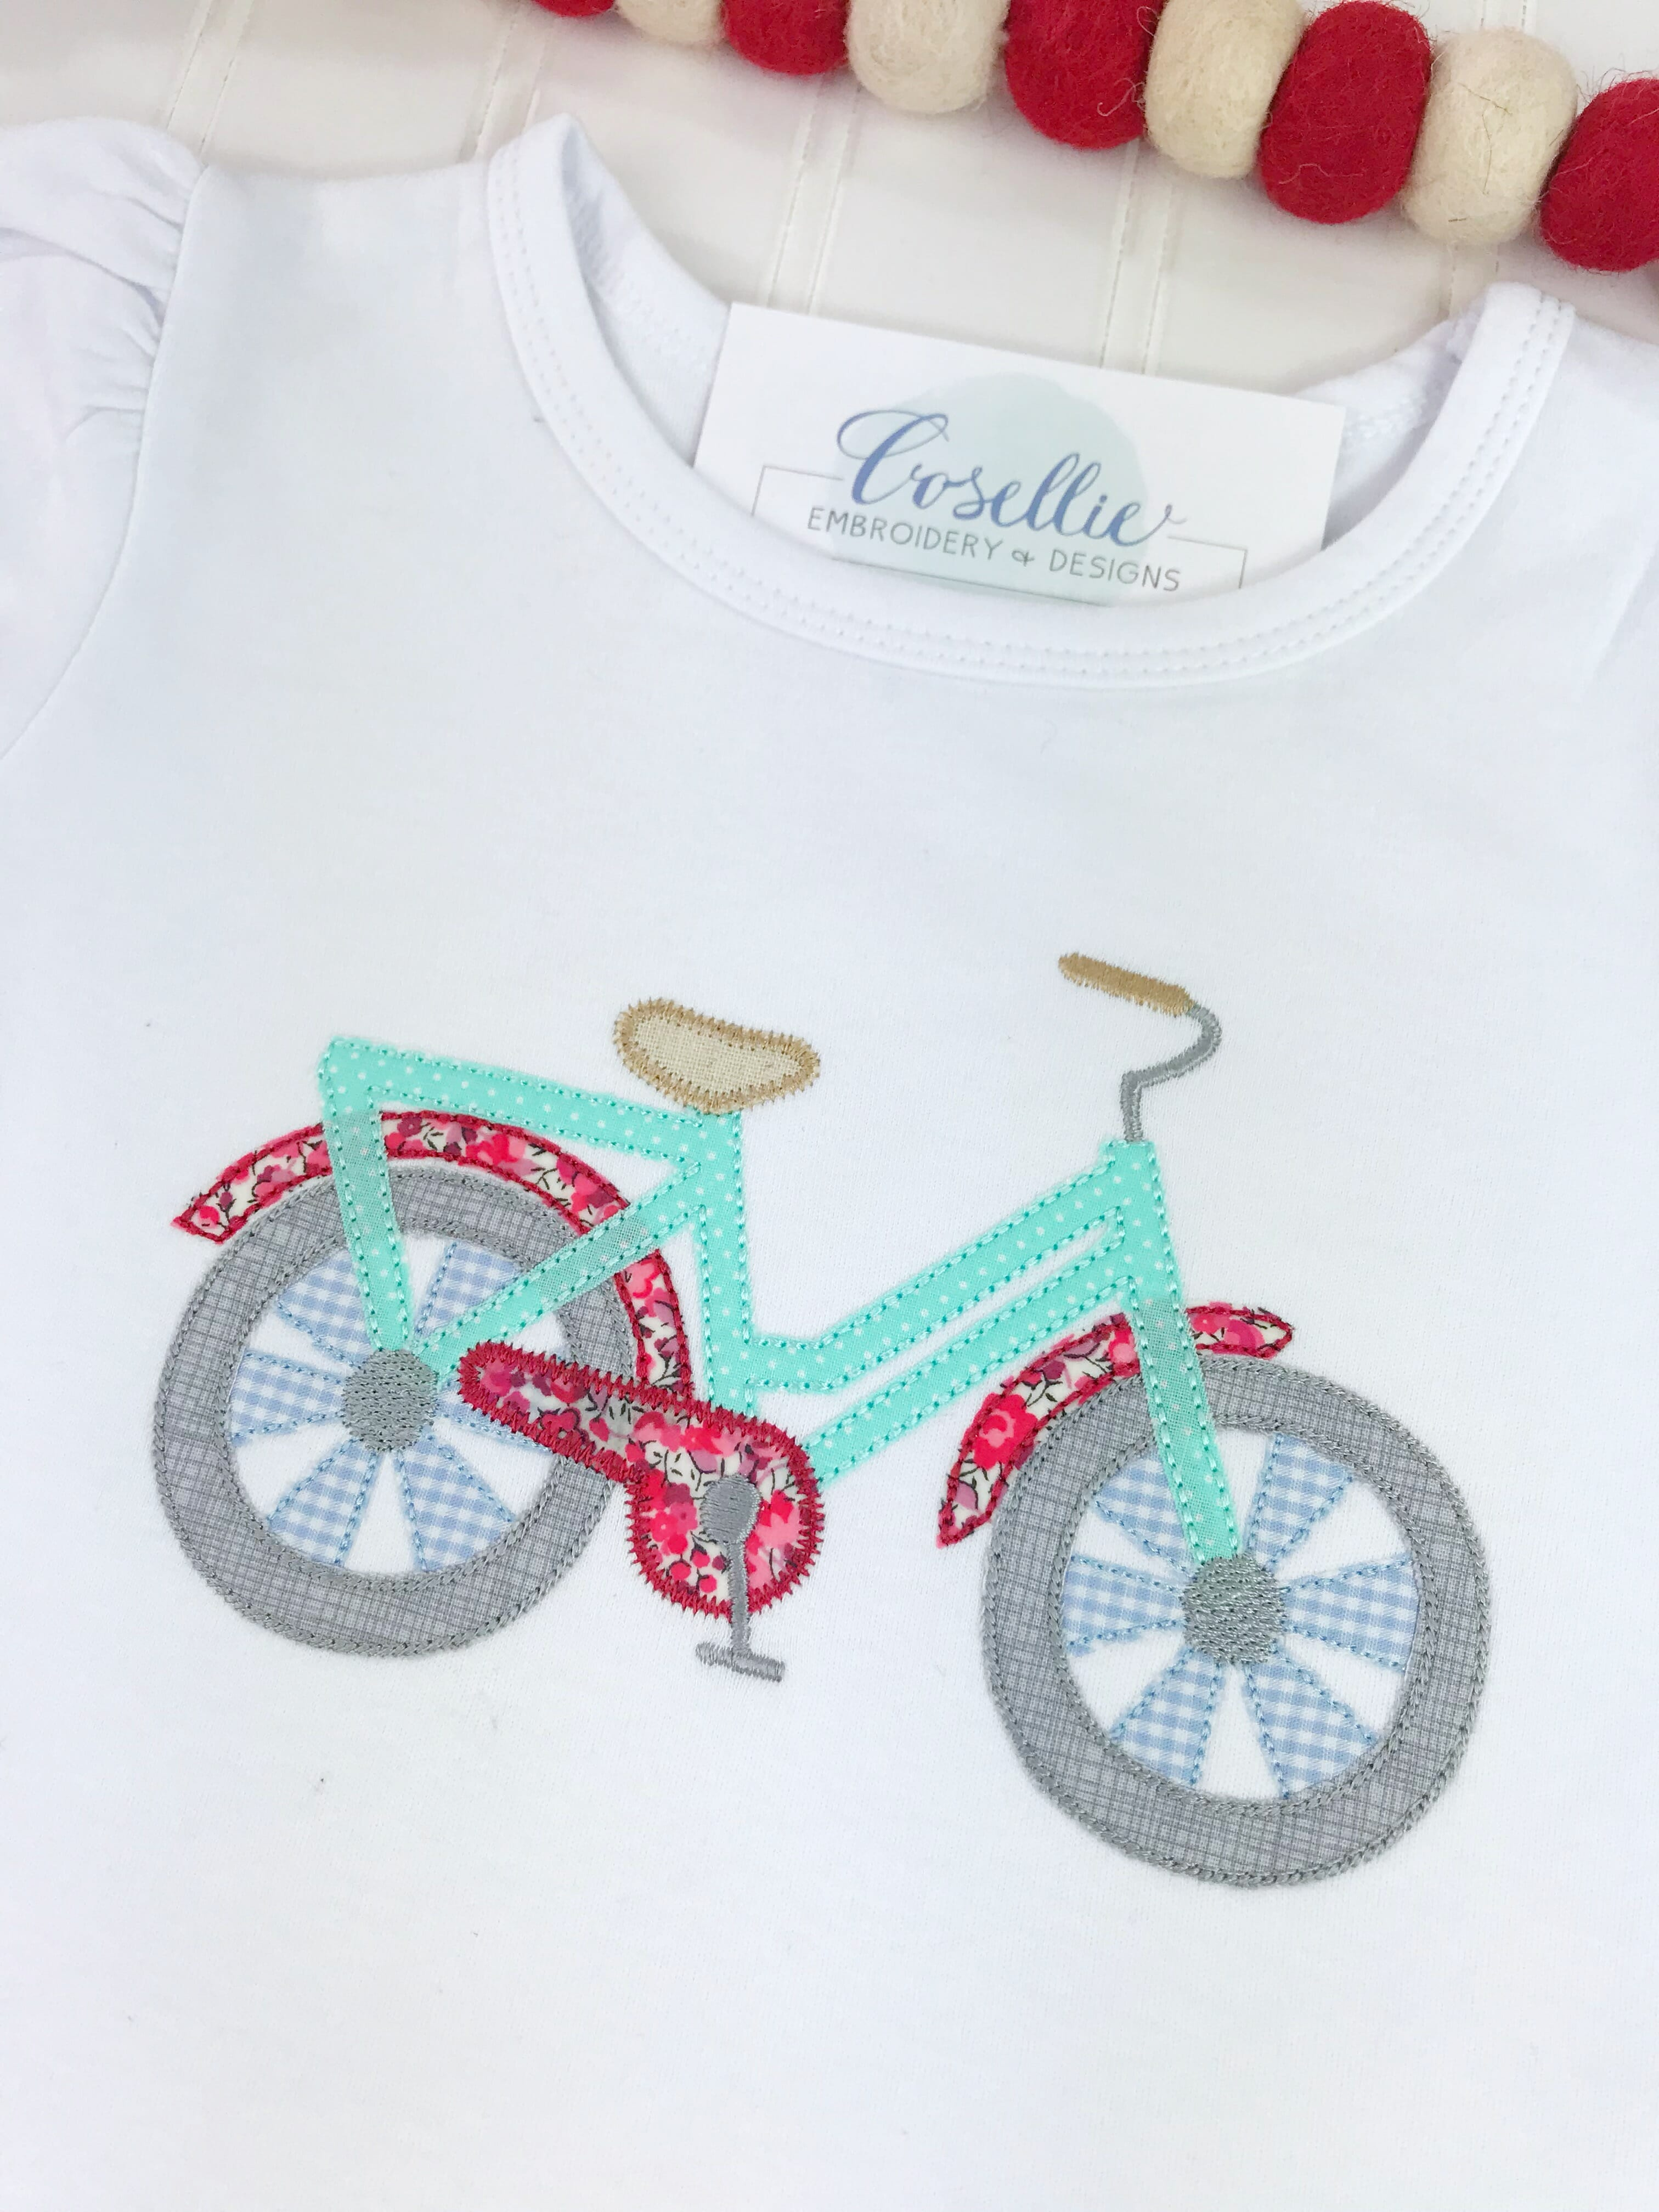 Bicycle Applique Embroidery Design Embroidery Design Cosellie